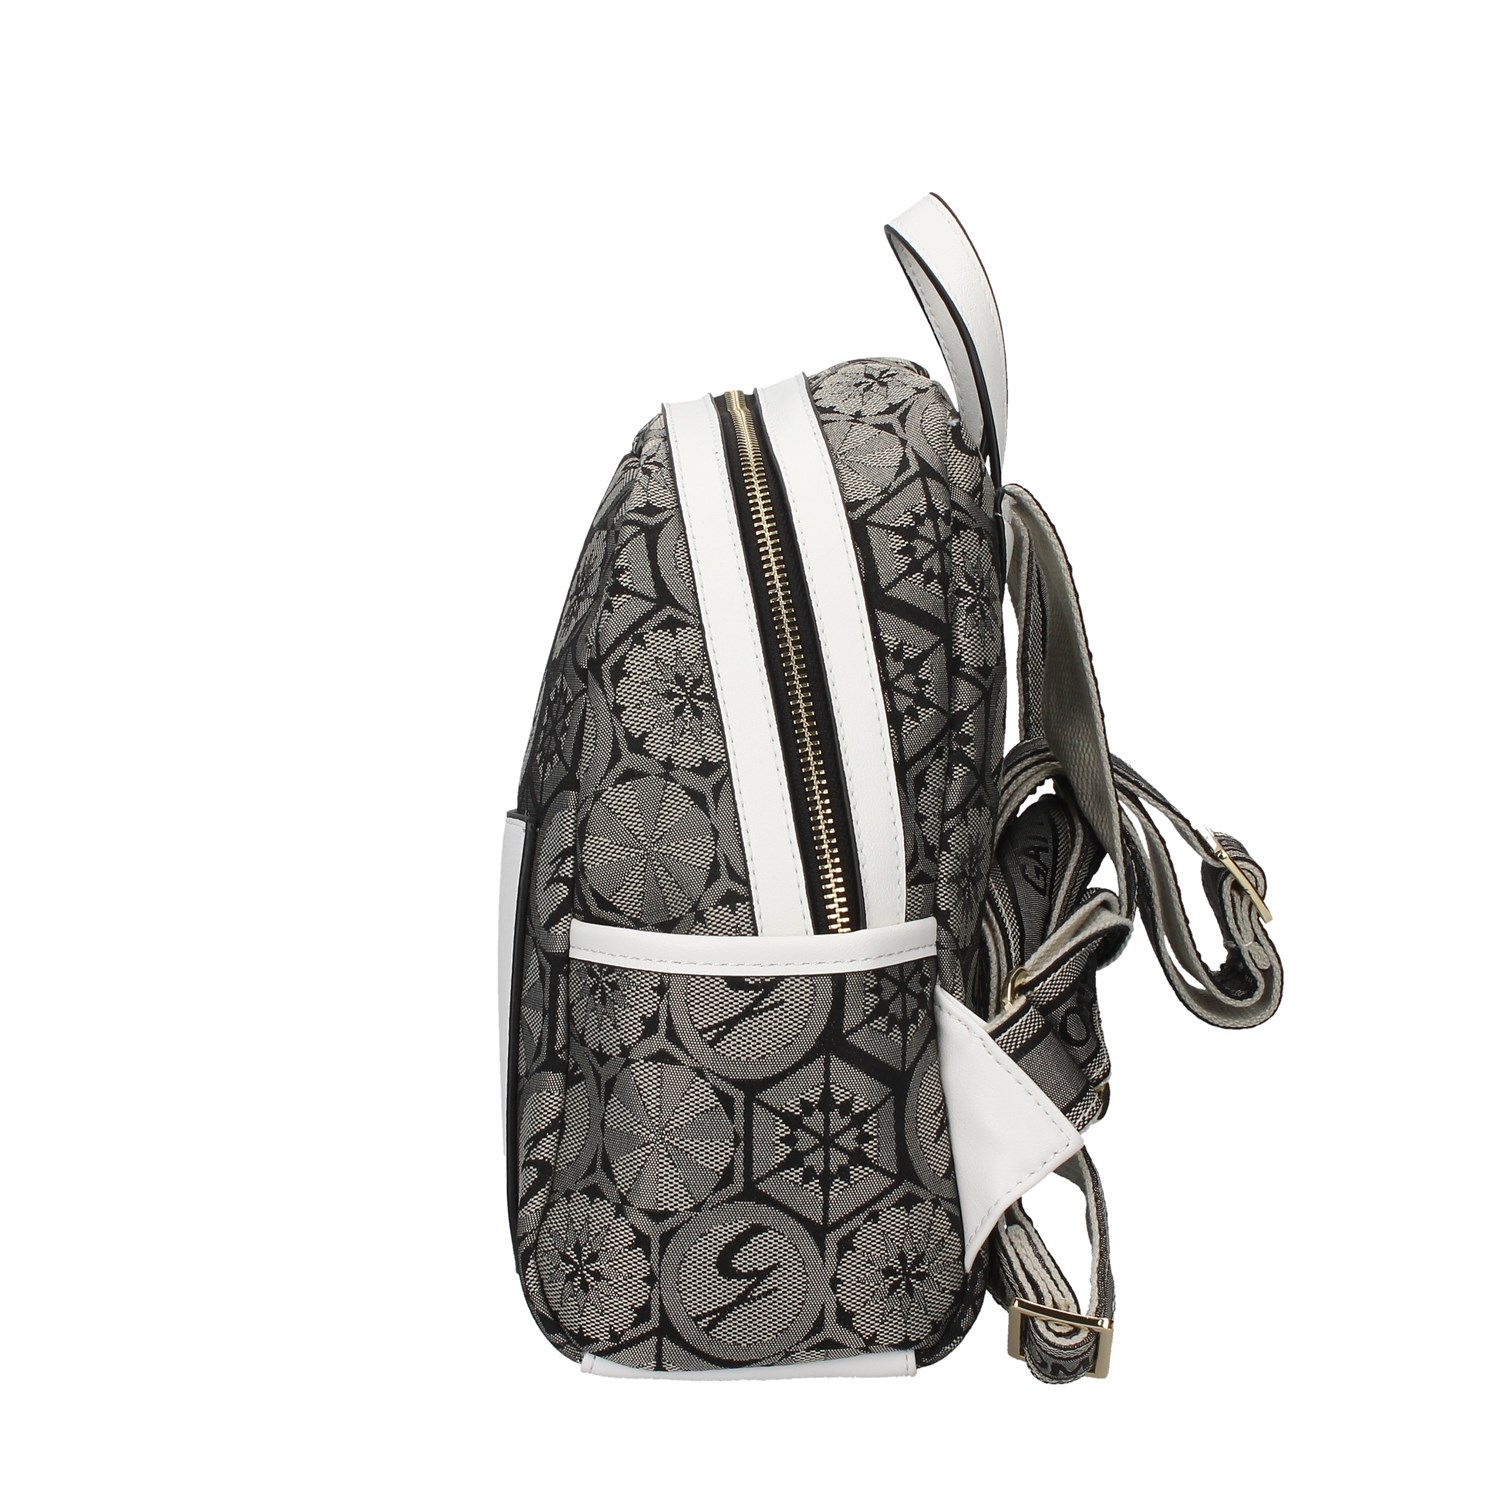 Gattinoni Roma Bags Accessories Backpacks WHITE BENBC7695WJ